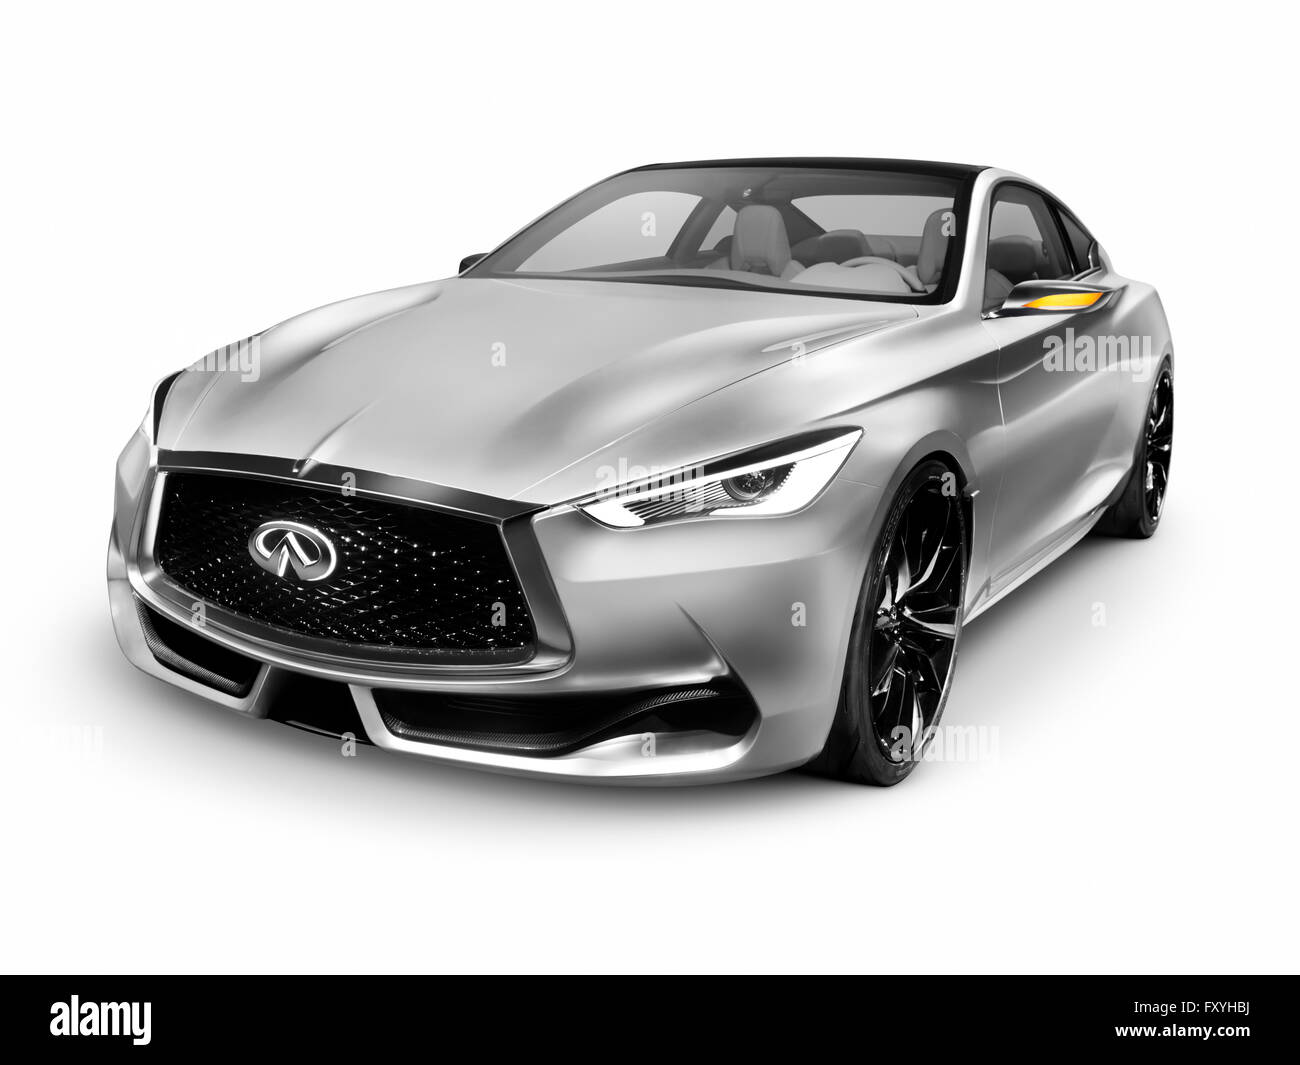 Silver 2015 infiniti q60 coupe nissan luxury car stock photo silver 2015 infiniti q60 coupe nissan luxury car vanachro Image collections